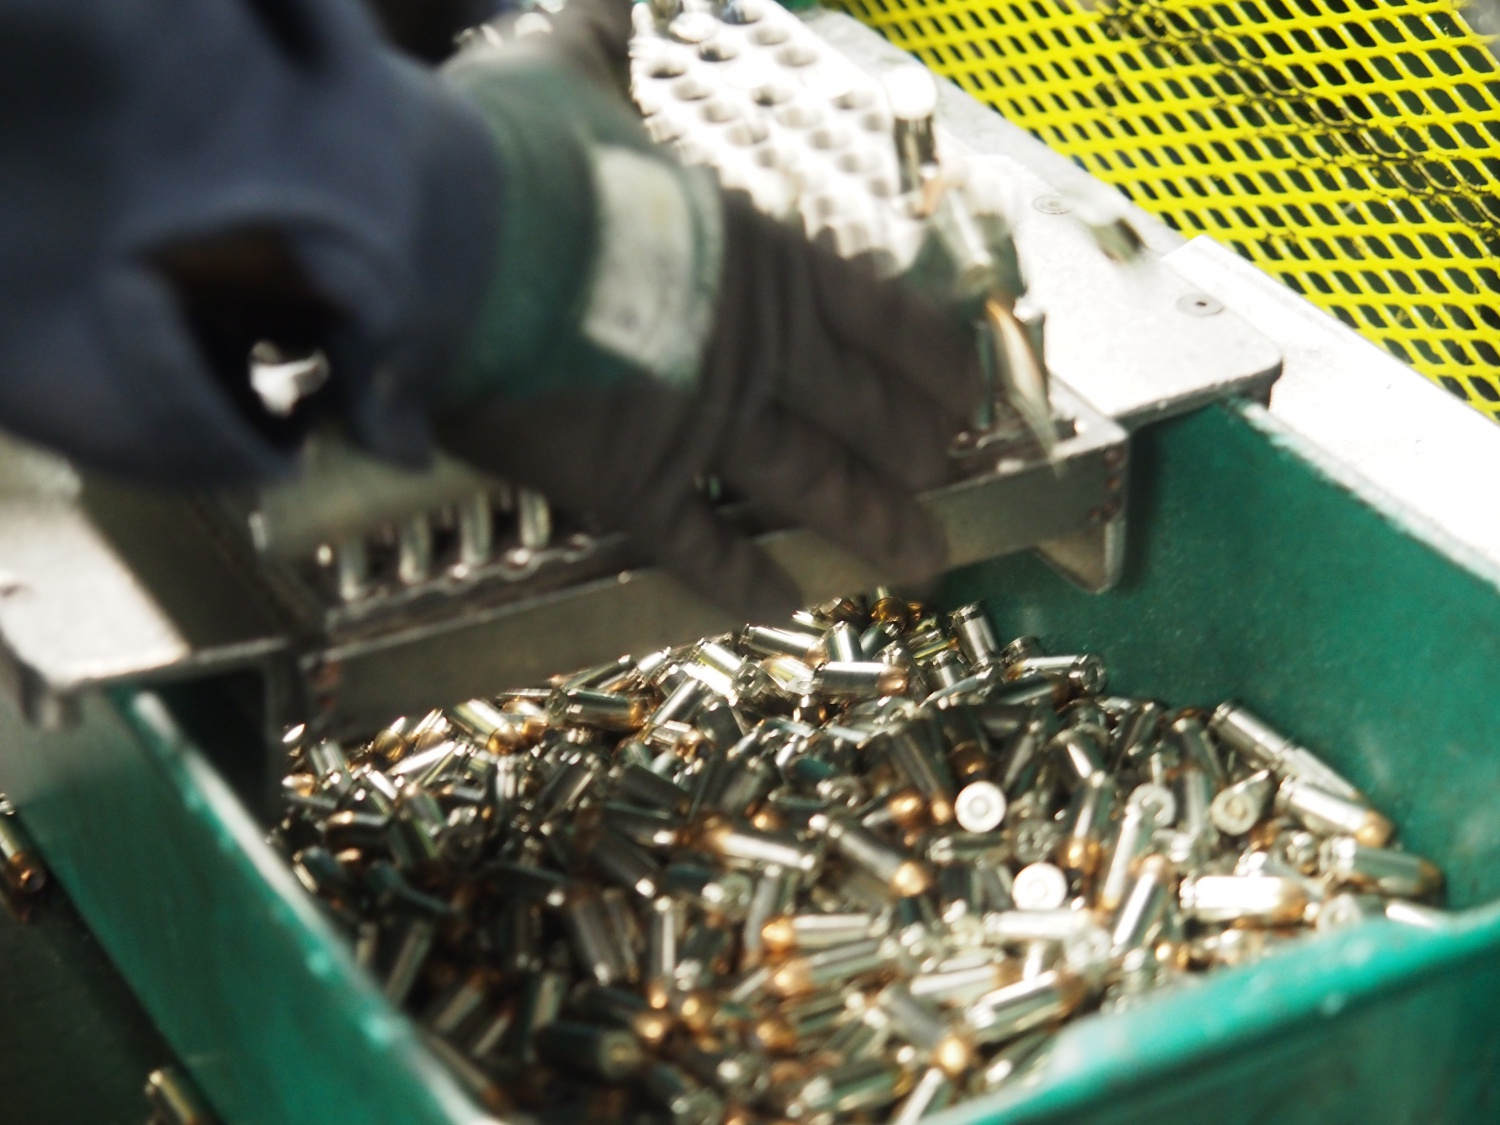 Once loaded the rounds go into the holding bin.